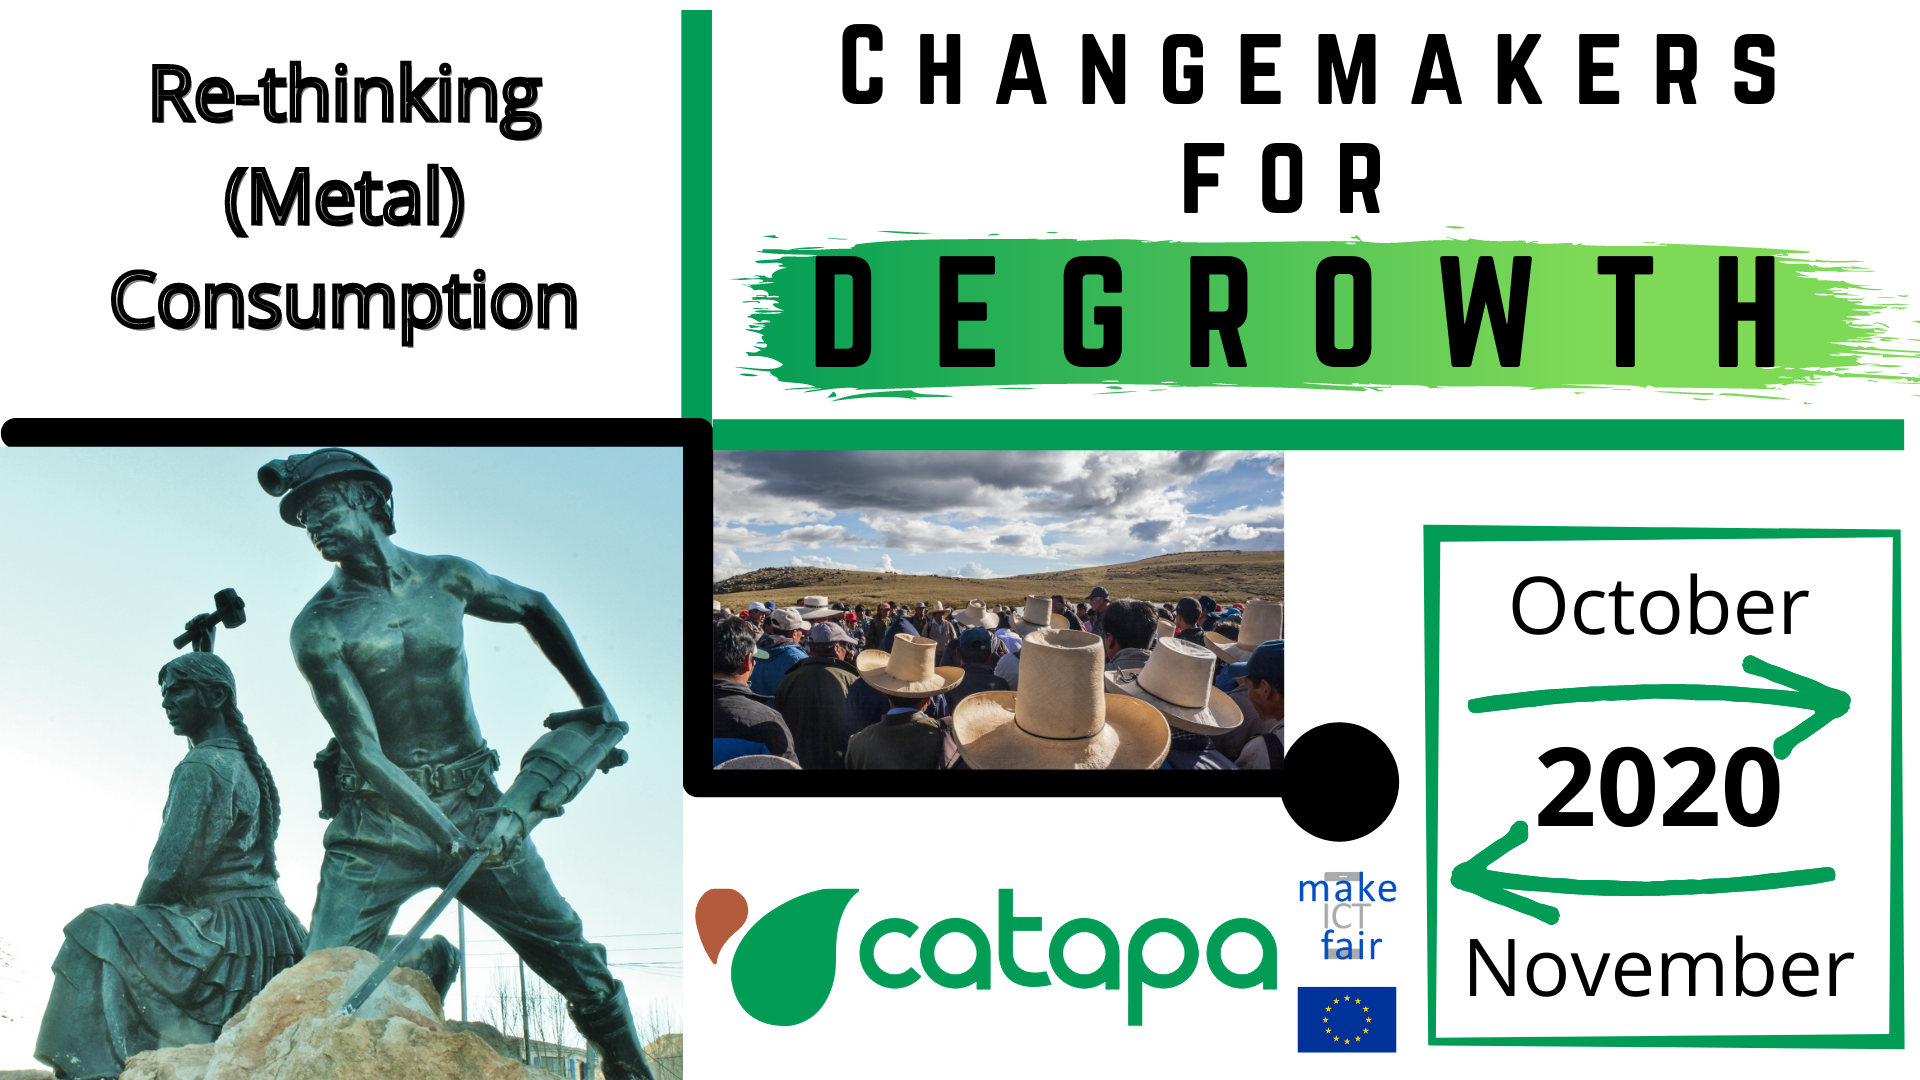 Banner Change Makers for Degrowth. With Statue of miners and image of a social movement in south america